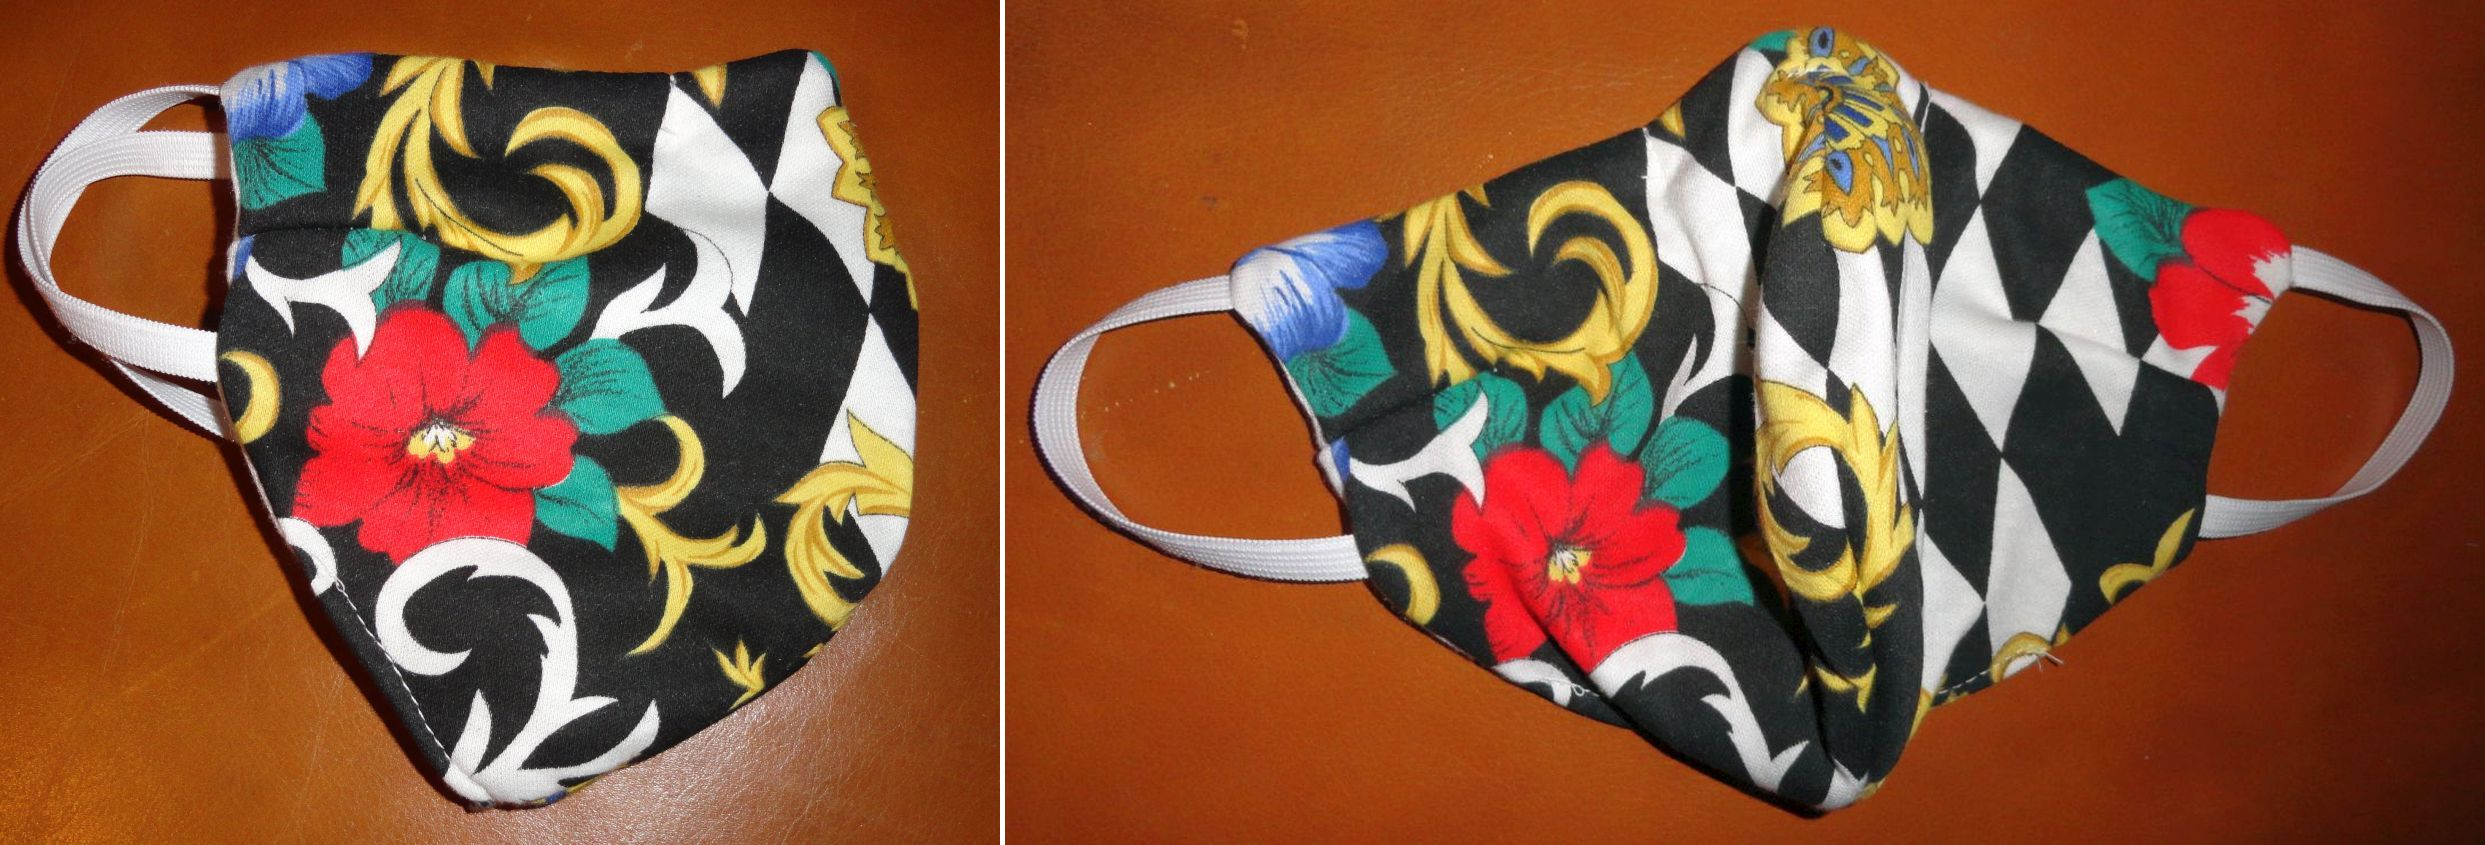 The Wildfloral Mask, 2 views